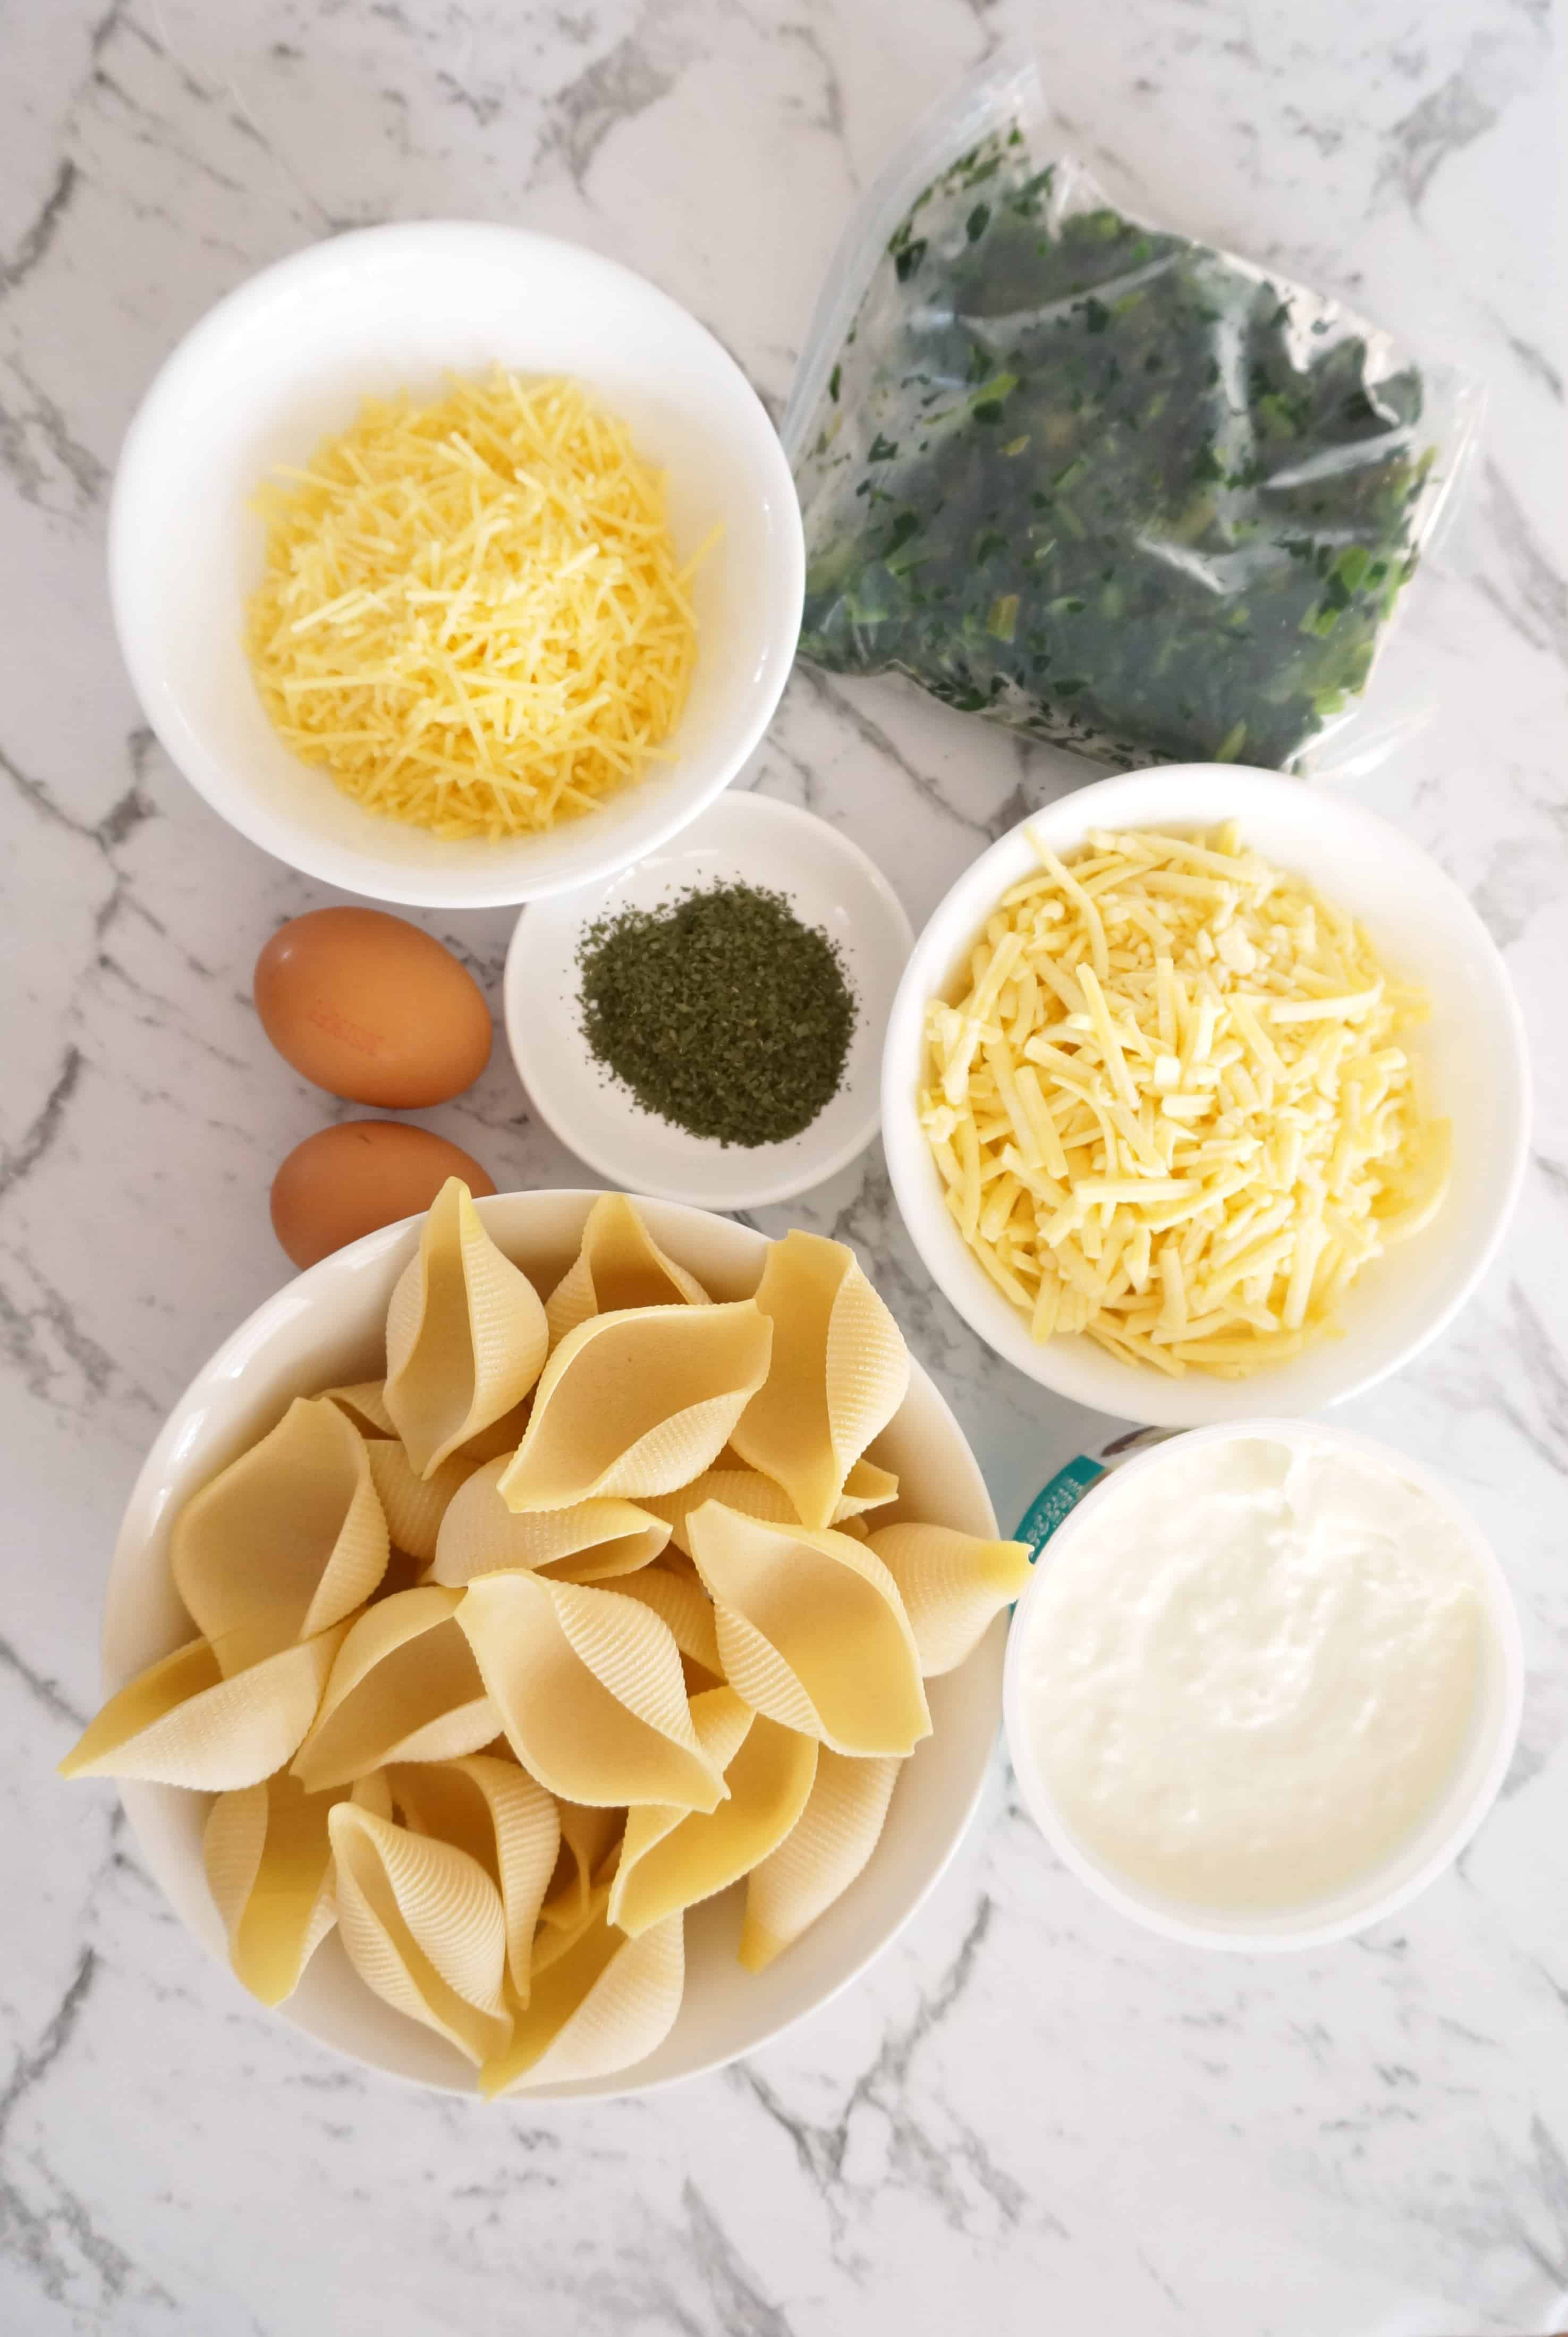 Ingredients for Stuffed Conchiglioni- grated parmesan, frozen spinach, eggs, dried parsley, cottage cheese, grated cheddar cheese, conchiglioni pasta shells